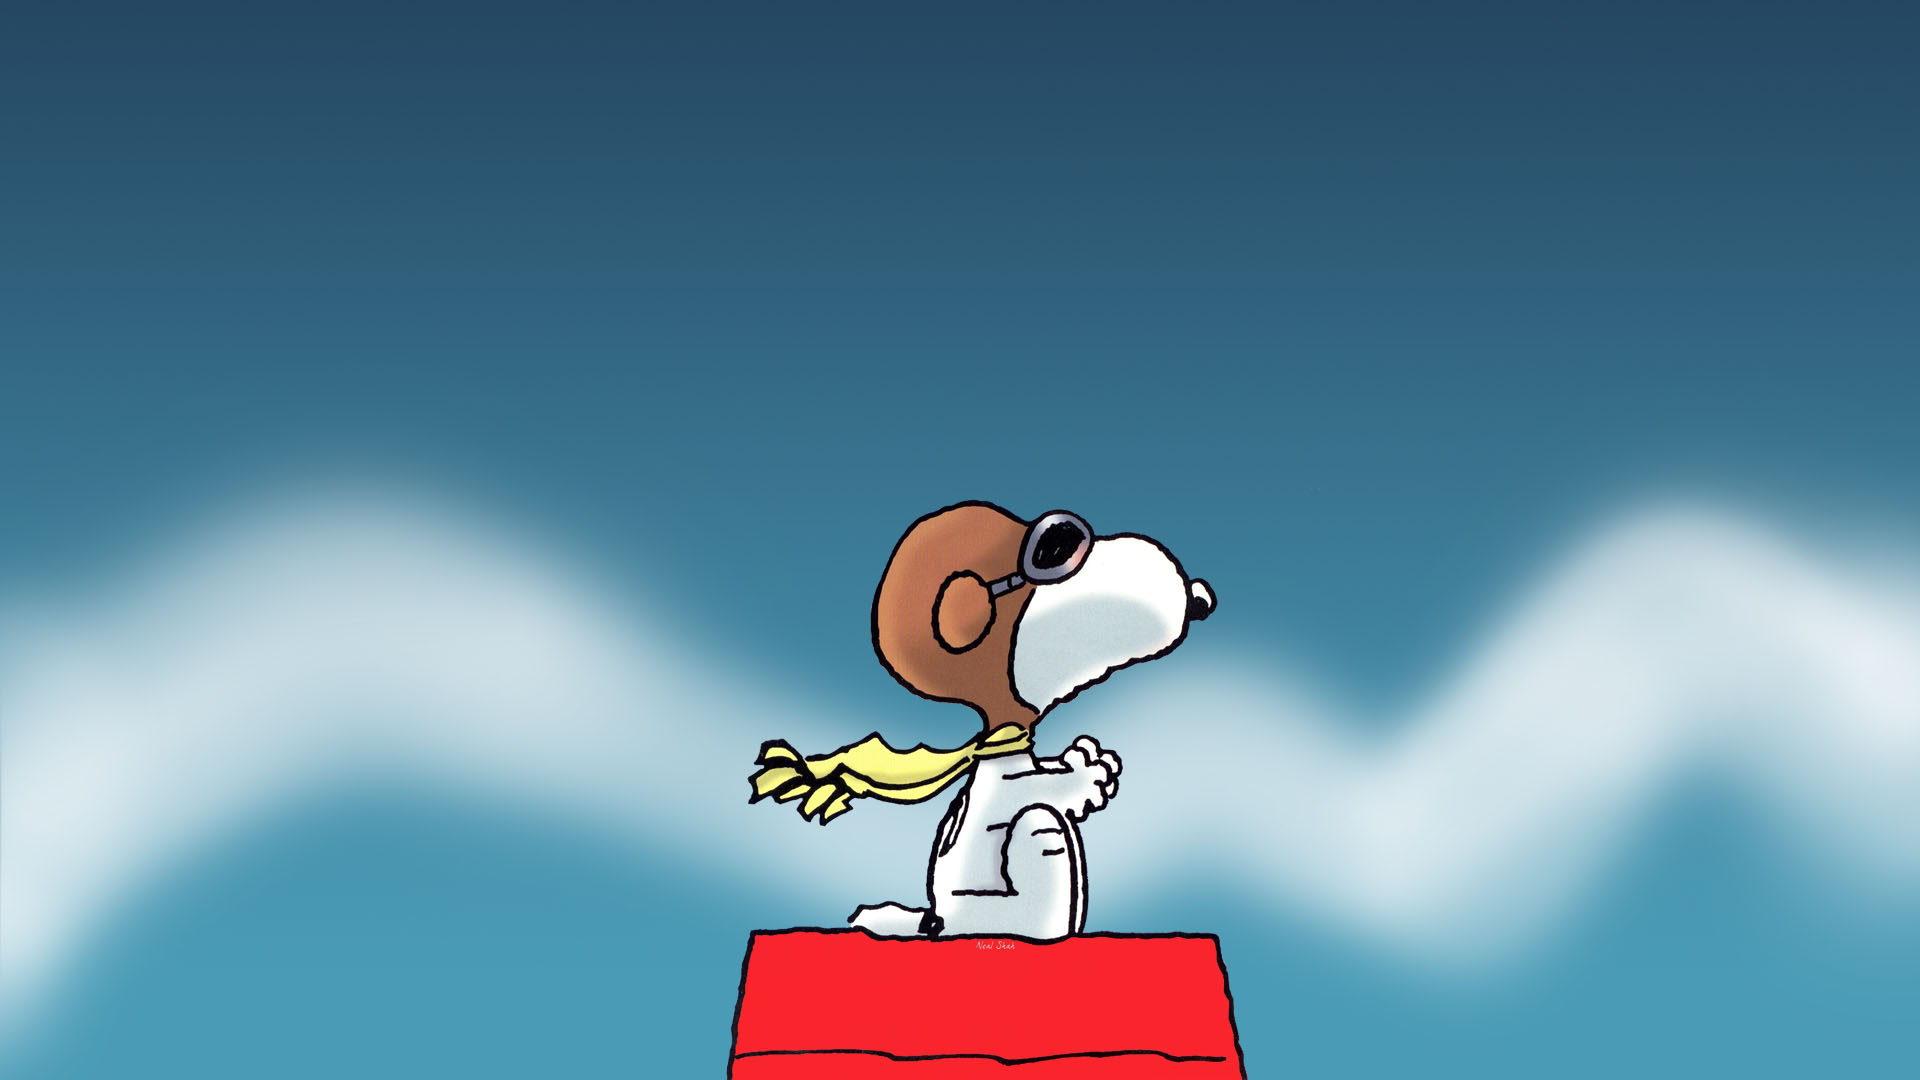 Snoopy wallpaper and Theme for Windows 8 All for Windows 10 1920x1080